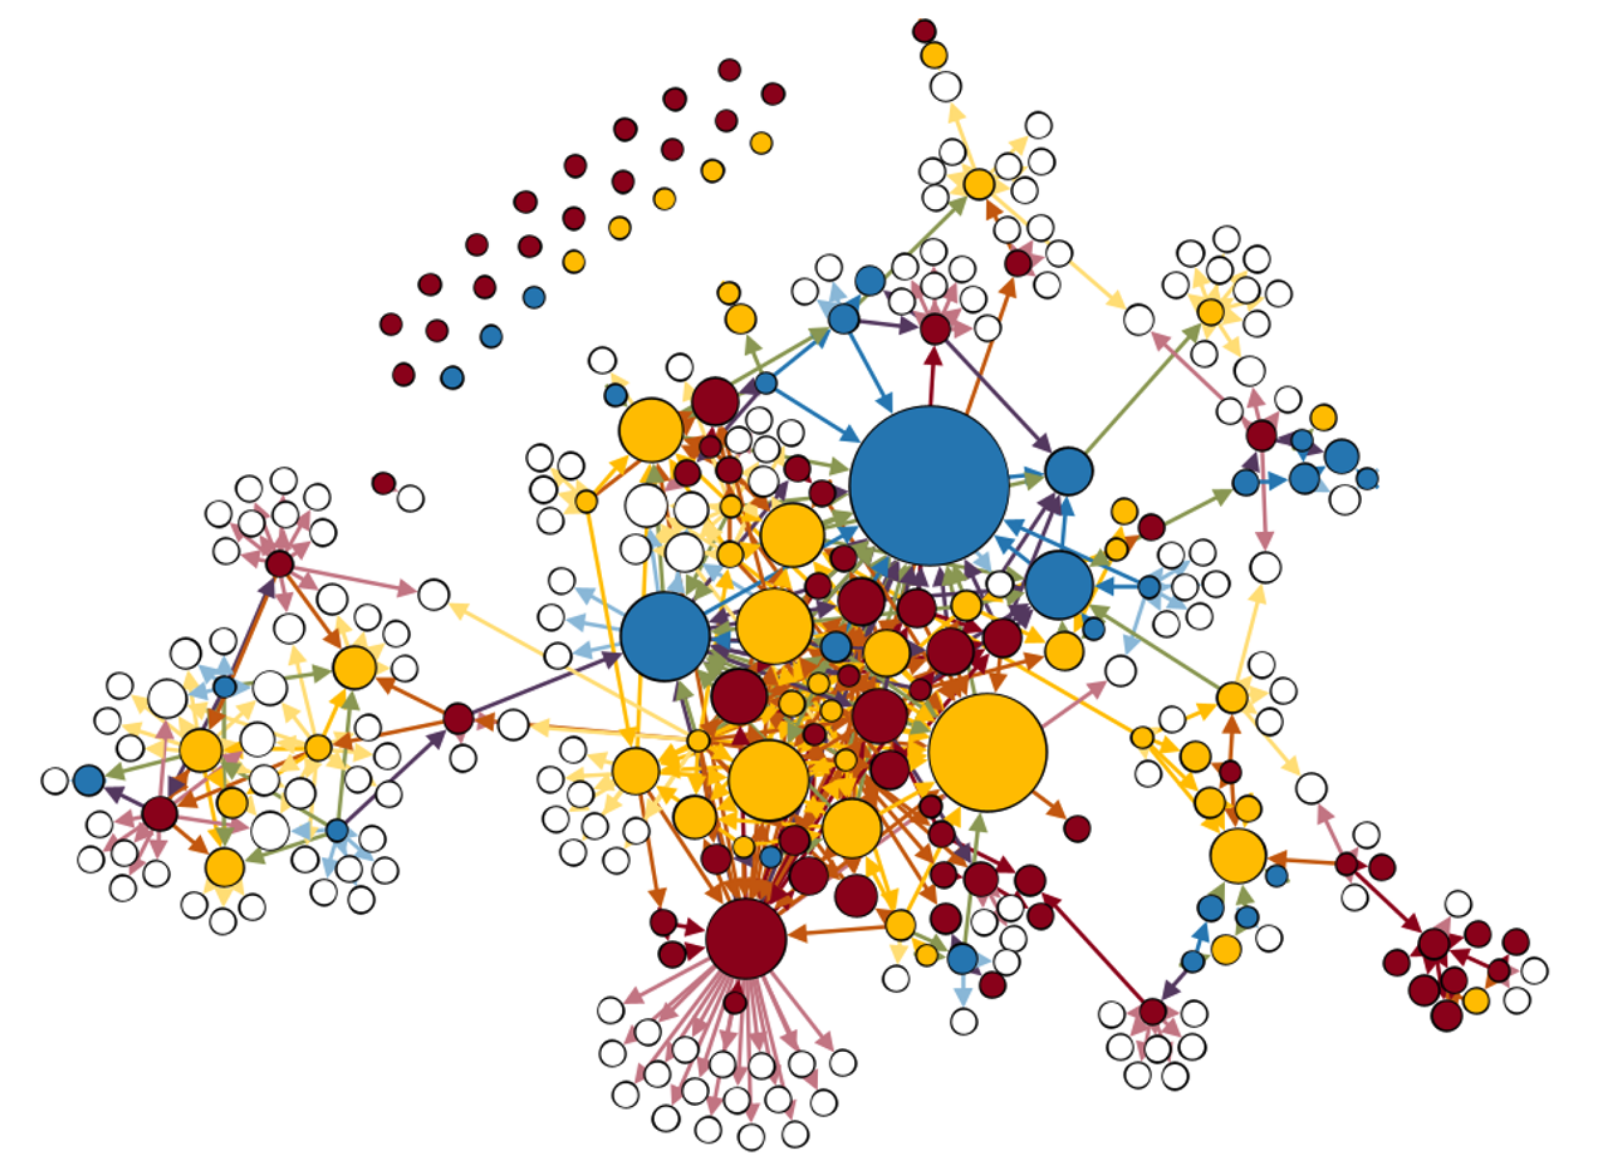 This is a network depicting 149 studies that test population differences in testosterone from 1966-2017. The nodes represent publications while the ties represent claims about population differences in testosterone. The size of the node signifies the number of times each study is cited within the network and colors of the nodes align with the outcomes of studies - red meaning no differences in testosterone, yellow meaning mixed results, and blue meaning clear differences in testosterone between the populations being tested. My analysis reveals that the majority of existing fails to find difference in testosterone between racialized populations, despite the fact that these claims are widespread throughout the literature.